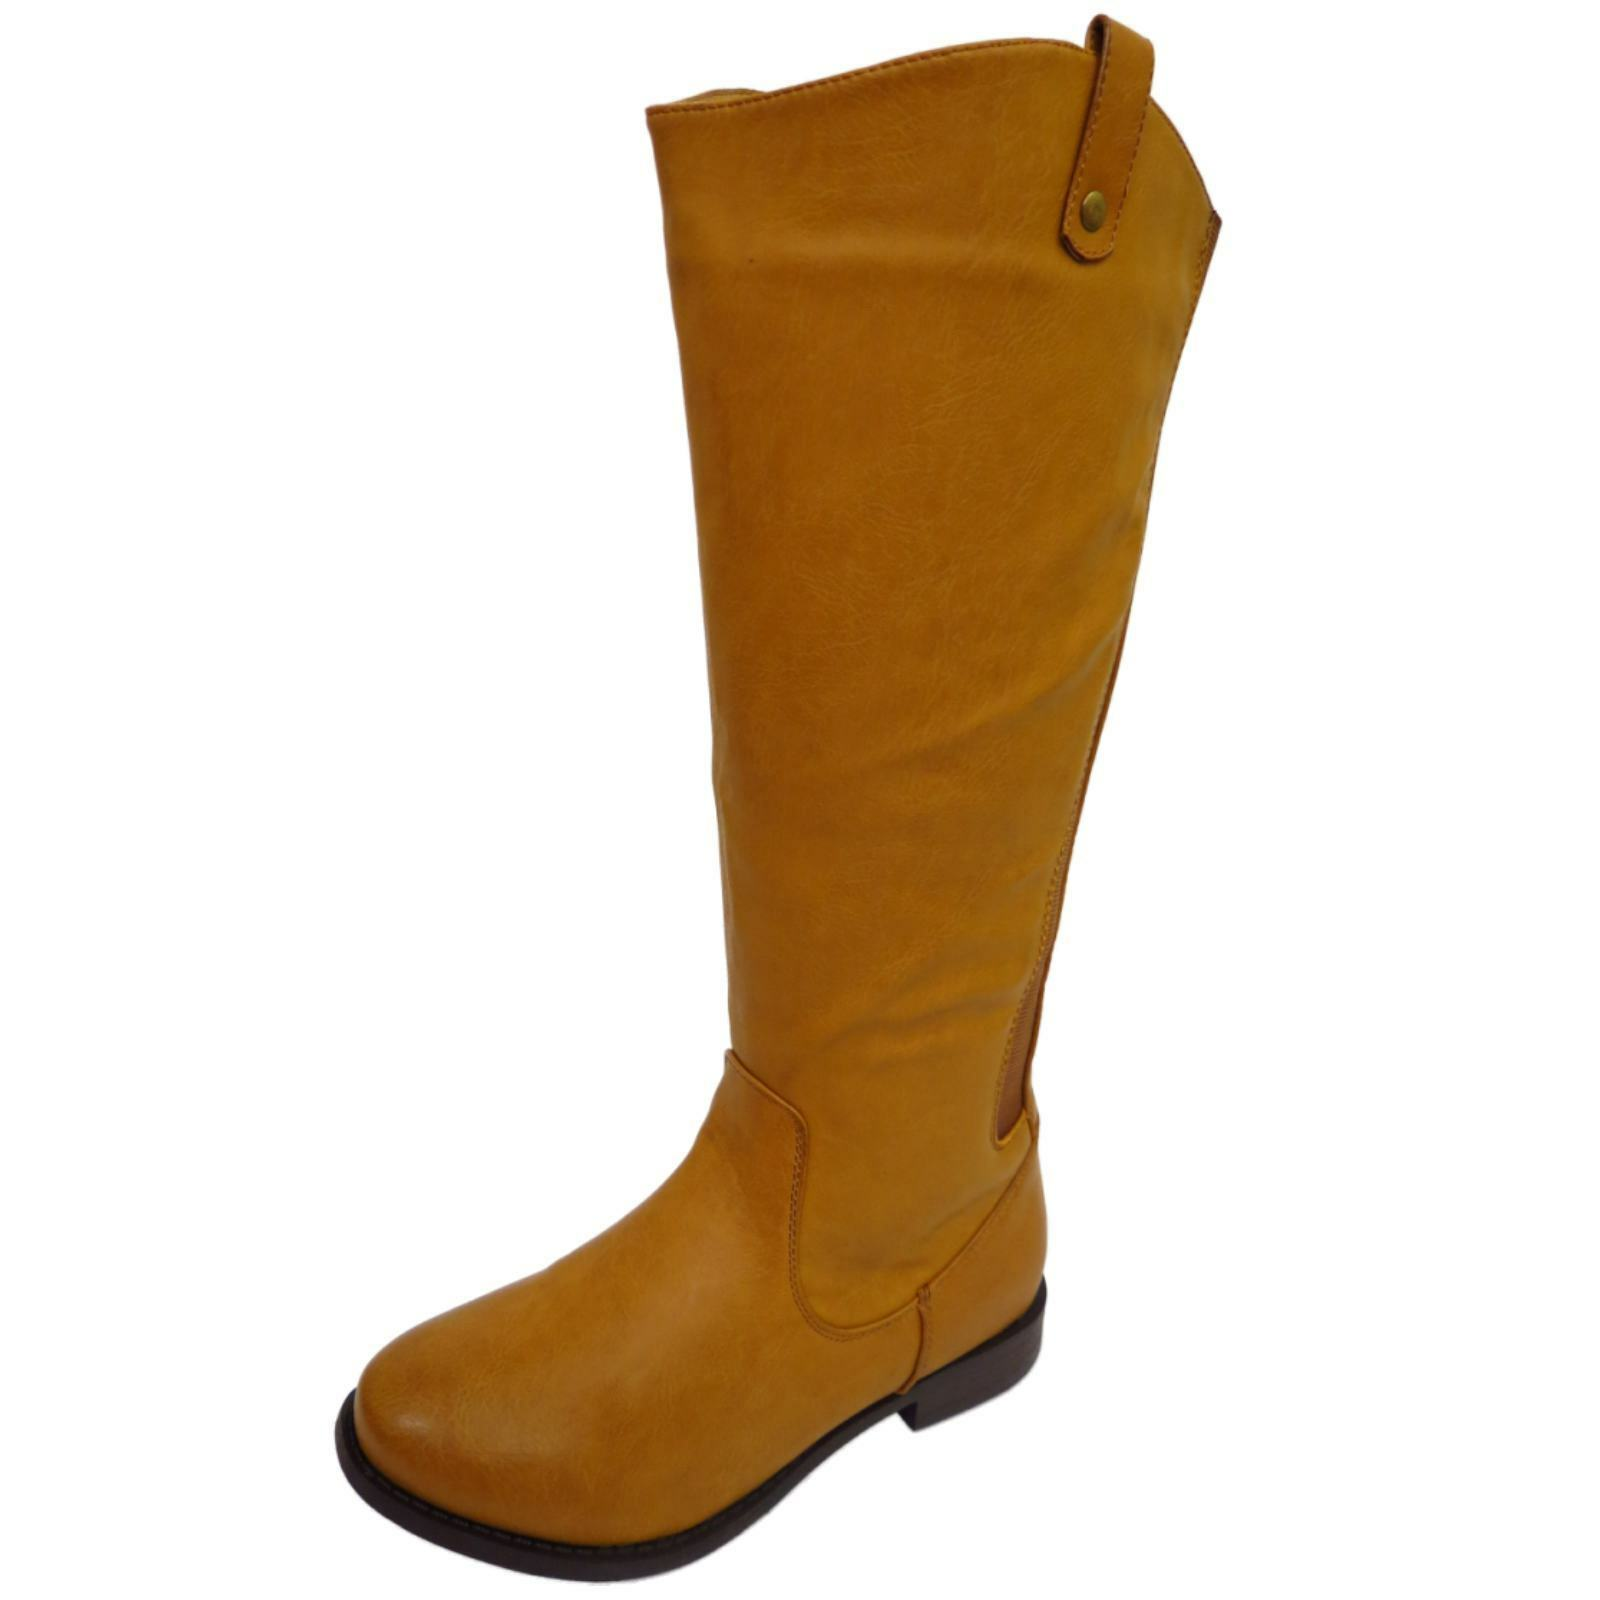 LADIES TAN EXTRA WIDE CALF WIDE-FIT BIKER KNEE-HIGH RIDING COWBOY BOOTS UK 4-9